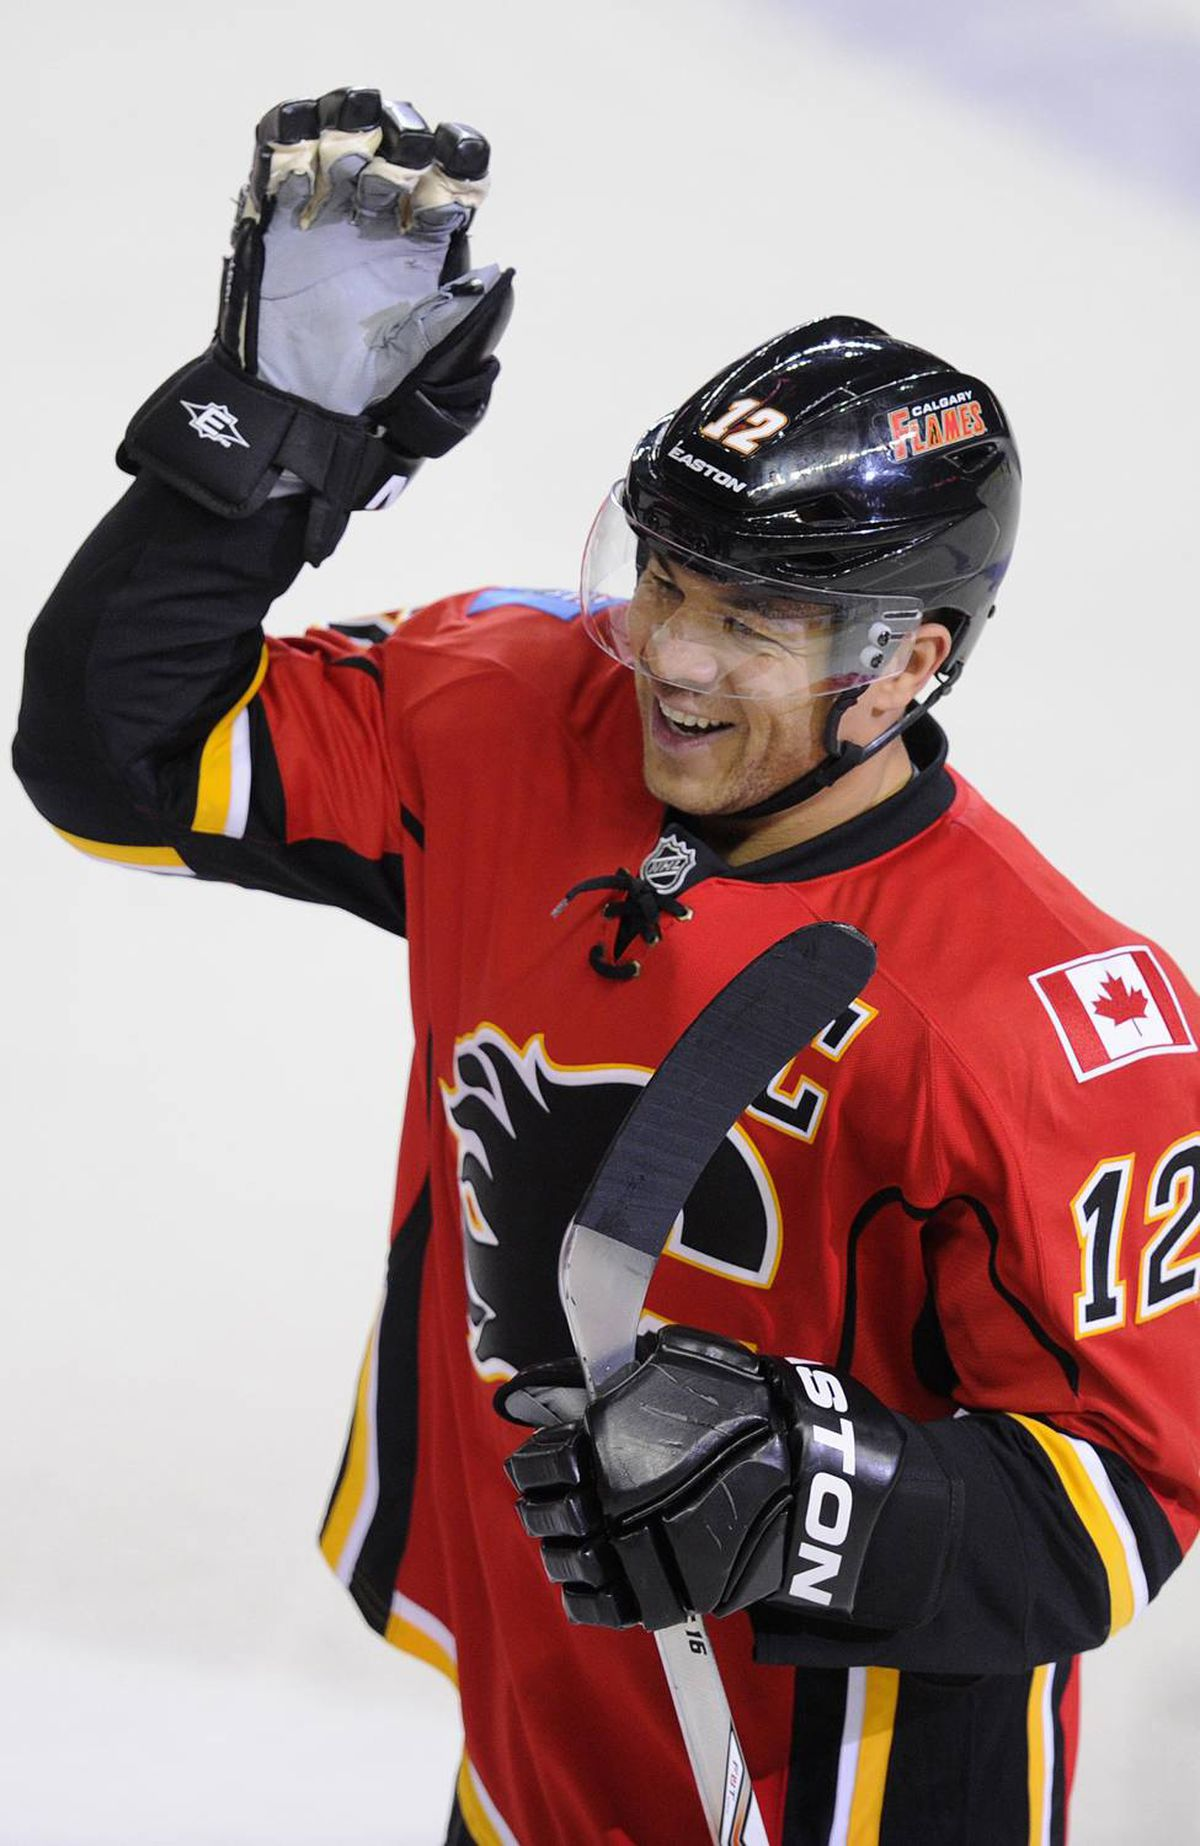 Calgary Flames' Jarome Iginla celebrates his 500th goal during the third period of their NHL hockey game against the Minnesota Wild in Calgary, Alberta, January 7, 2012.